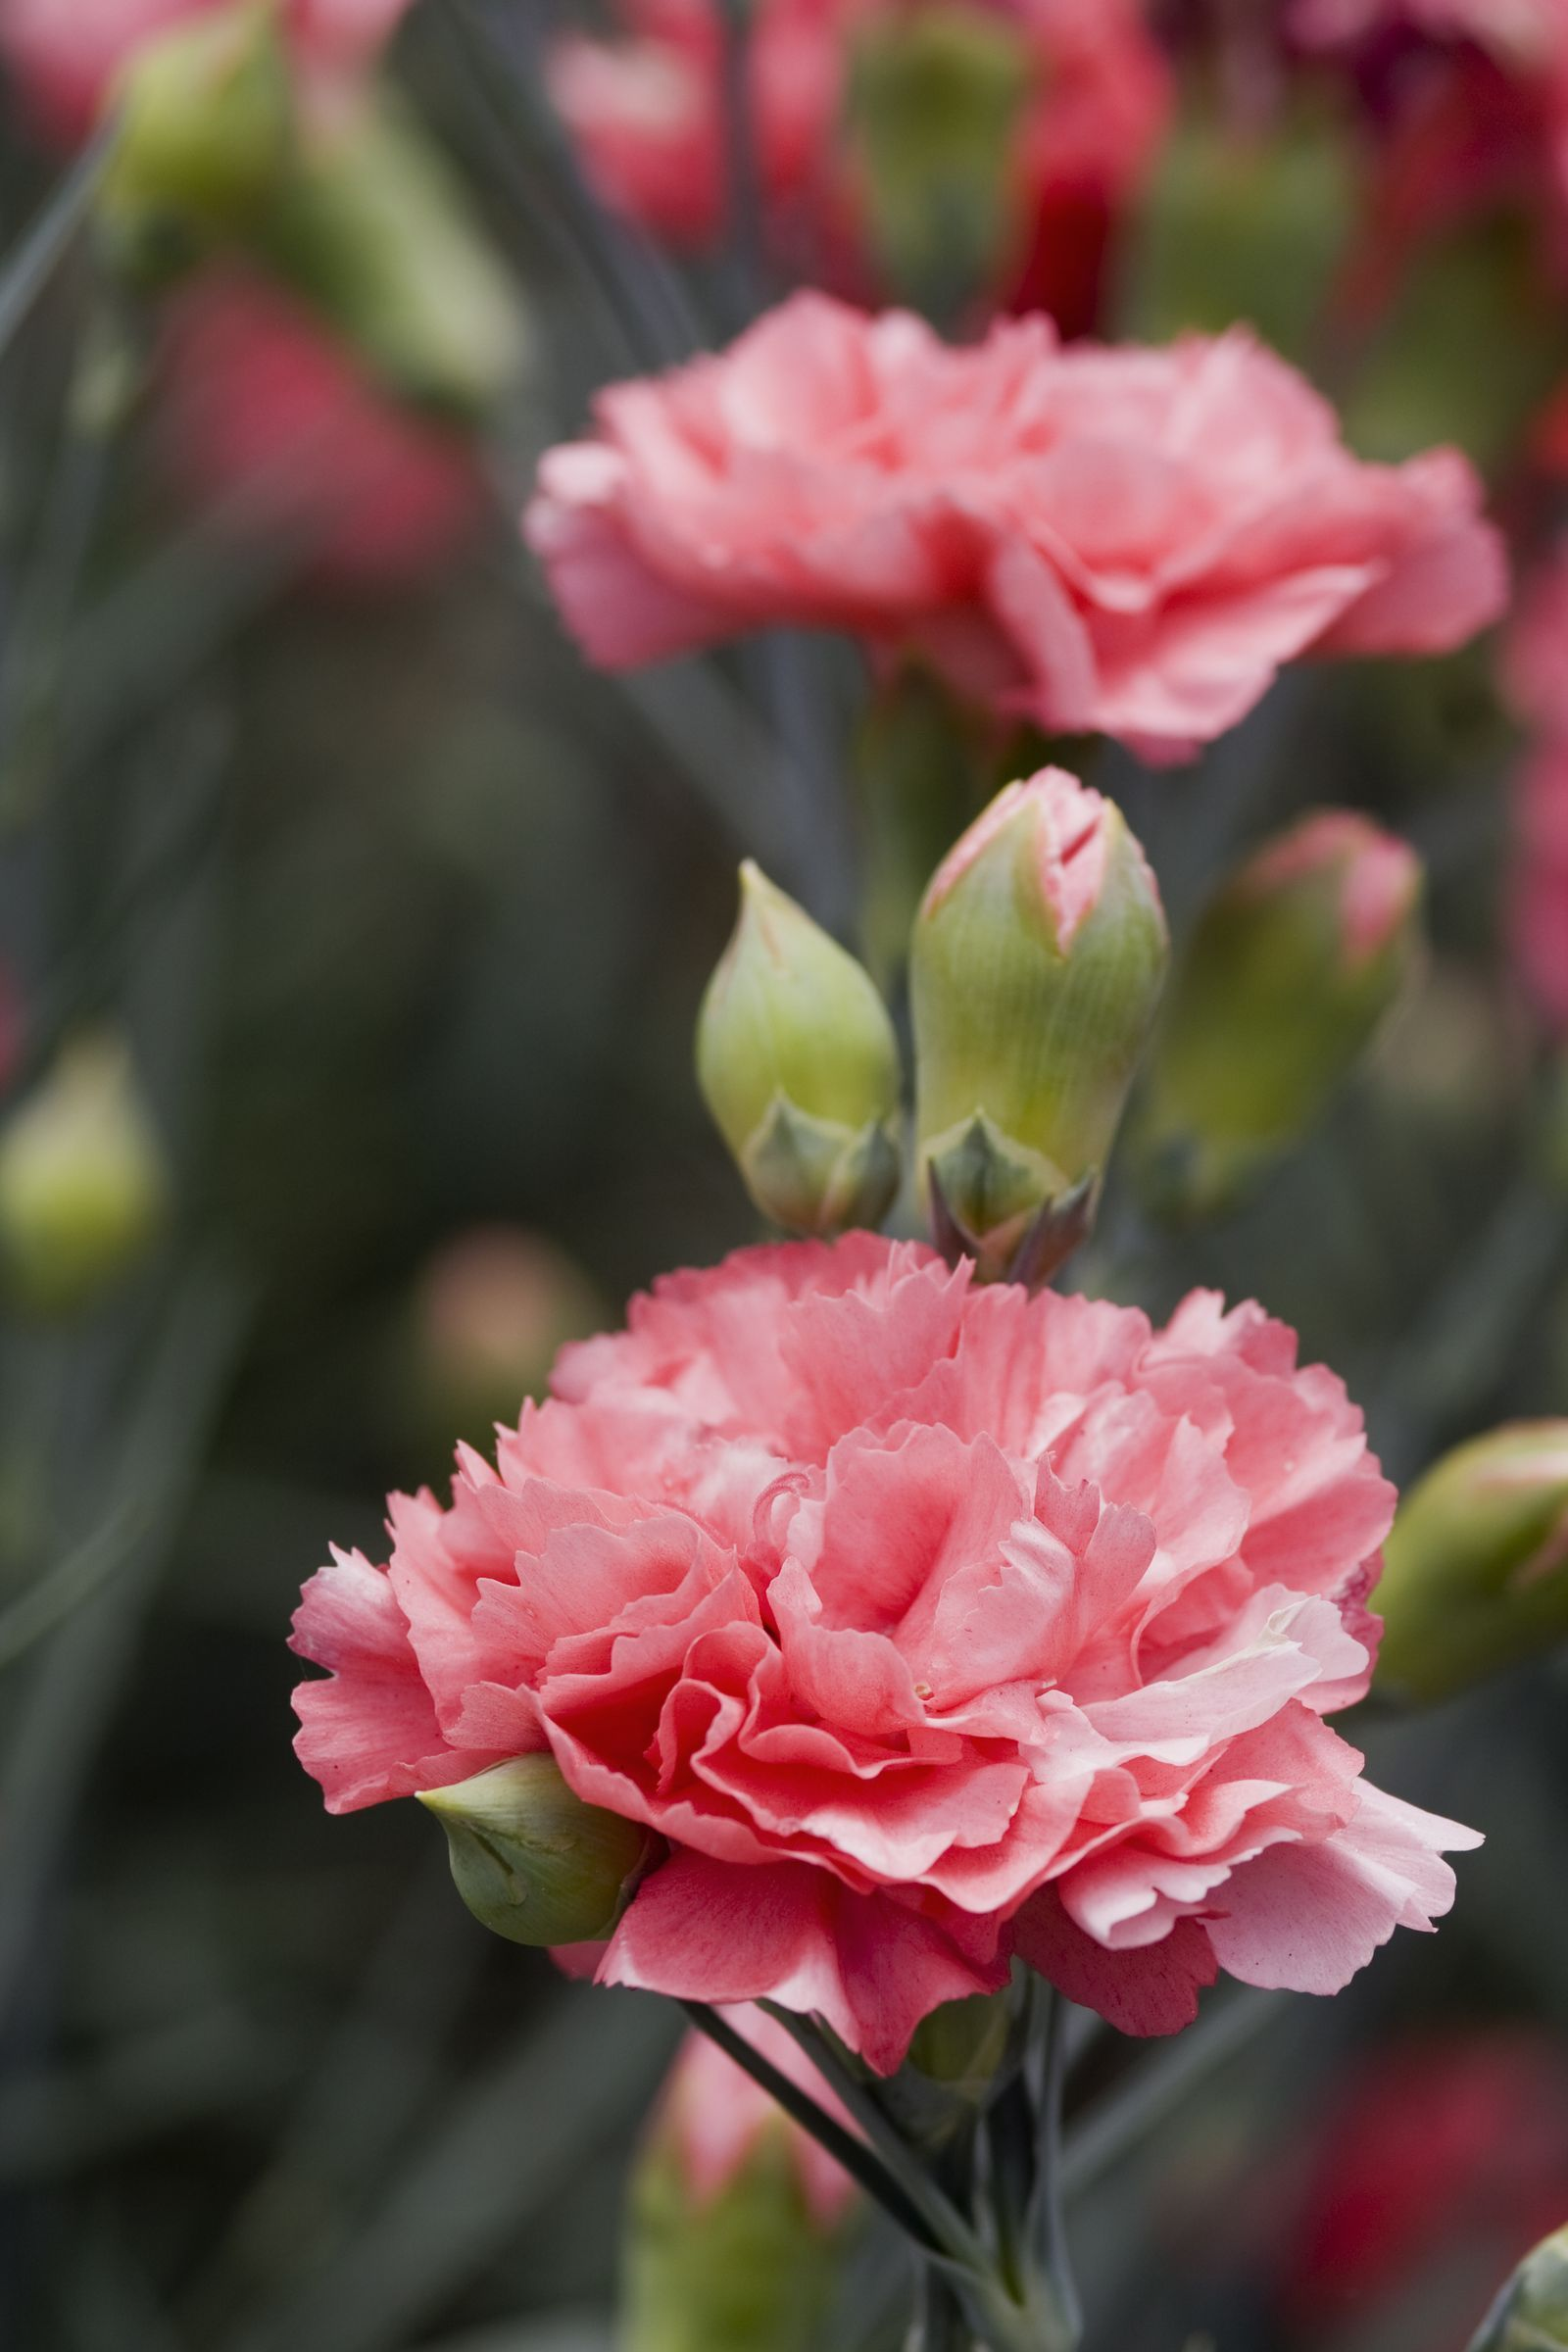 9 Reasons Carnations Are Actually The Best In 2020 Carnation Plants Carnation Flower Dried Flower Bouquet